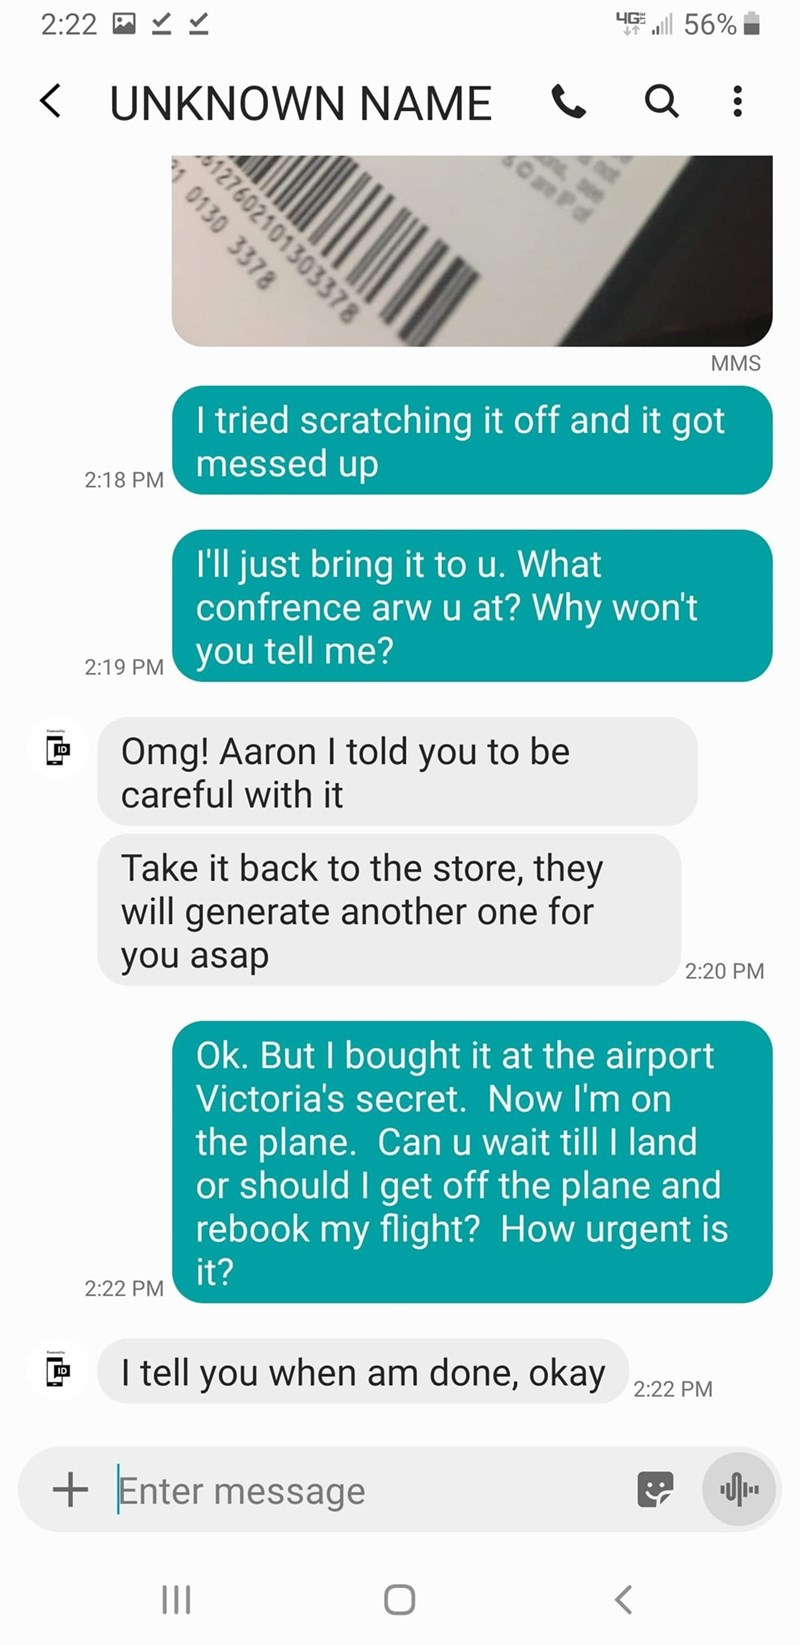 Text - 4G al 56% 2:22 KUNKNOWN NAME MMS I tried scratching it off and it got messed up 2:18 PM I'll just bring it to u. What confrence arw u at? Why won't you tell me? 2:19 PM Omg! Aaron I told you to be careful with it Take it back to the store, they will generate another one for you asap 2:20 PM Ok. But I bought it at the airport Victoria's secret. Now I'm on the plane. Can u wait till I land or should I get off the plane and rebook my flight? How urgent is it? 2:22 PM I tell you when am done,